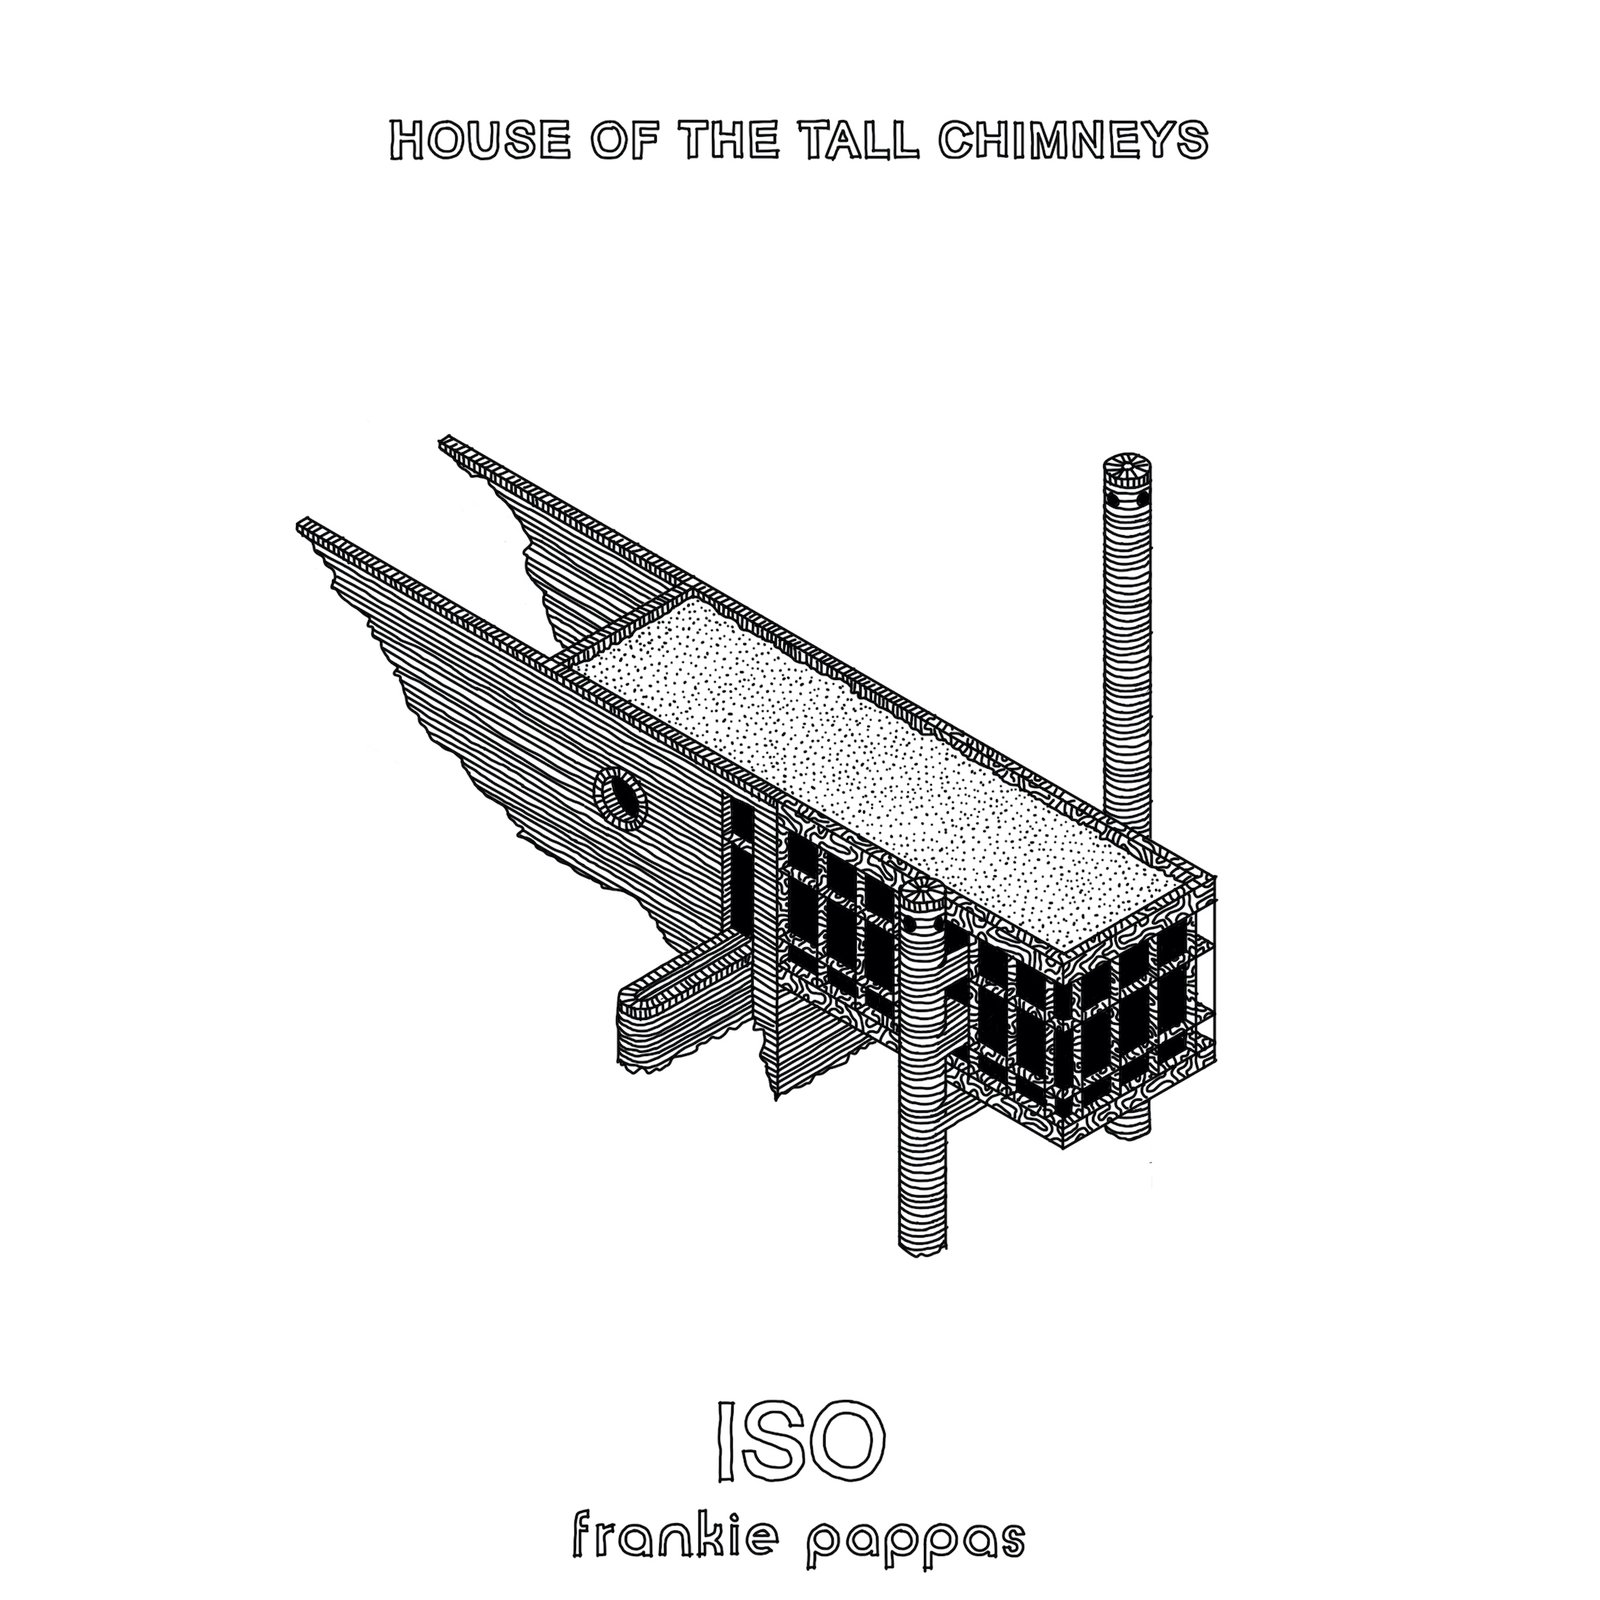 Isometric drawing of House of the Tall Chimneys by Frankie Pappas.